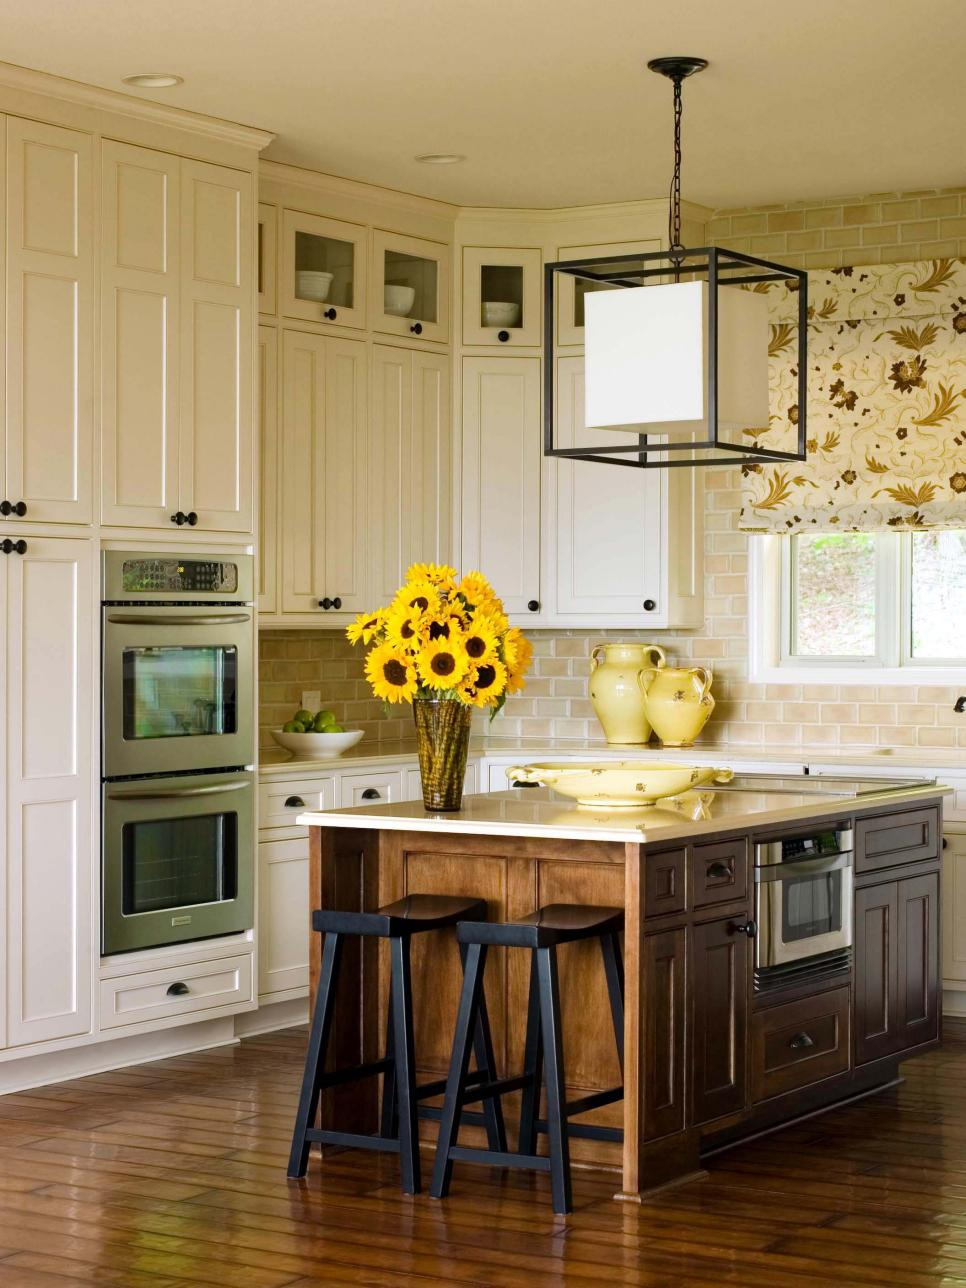 Cost Of New Cabinet Doors Fresh Kitchen Cabinet Refacing Cost Amazing Cabinets Do It